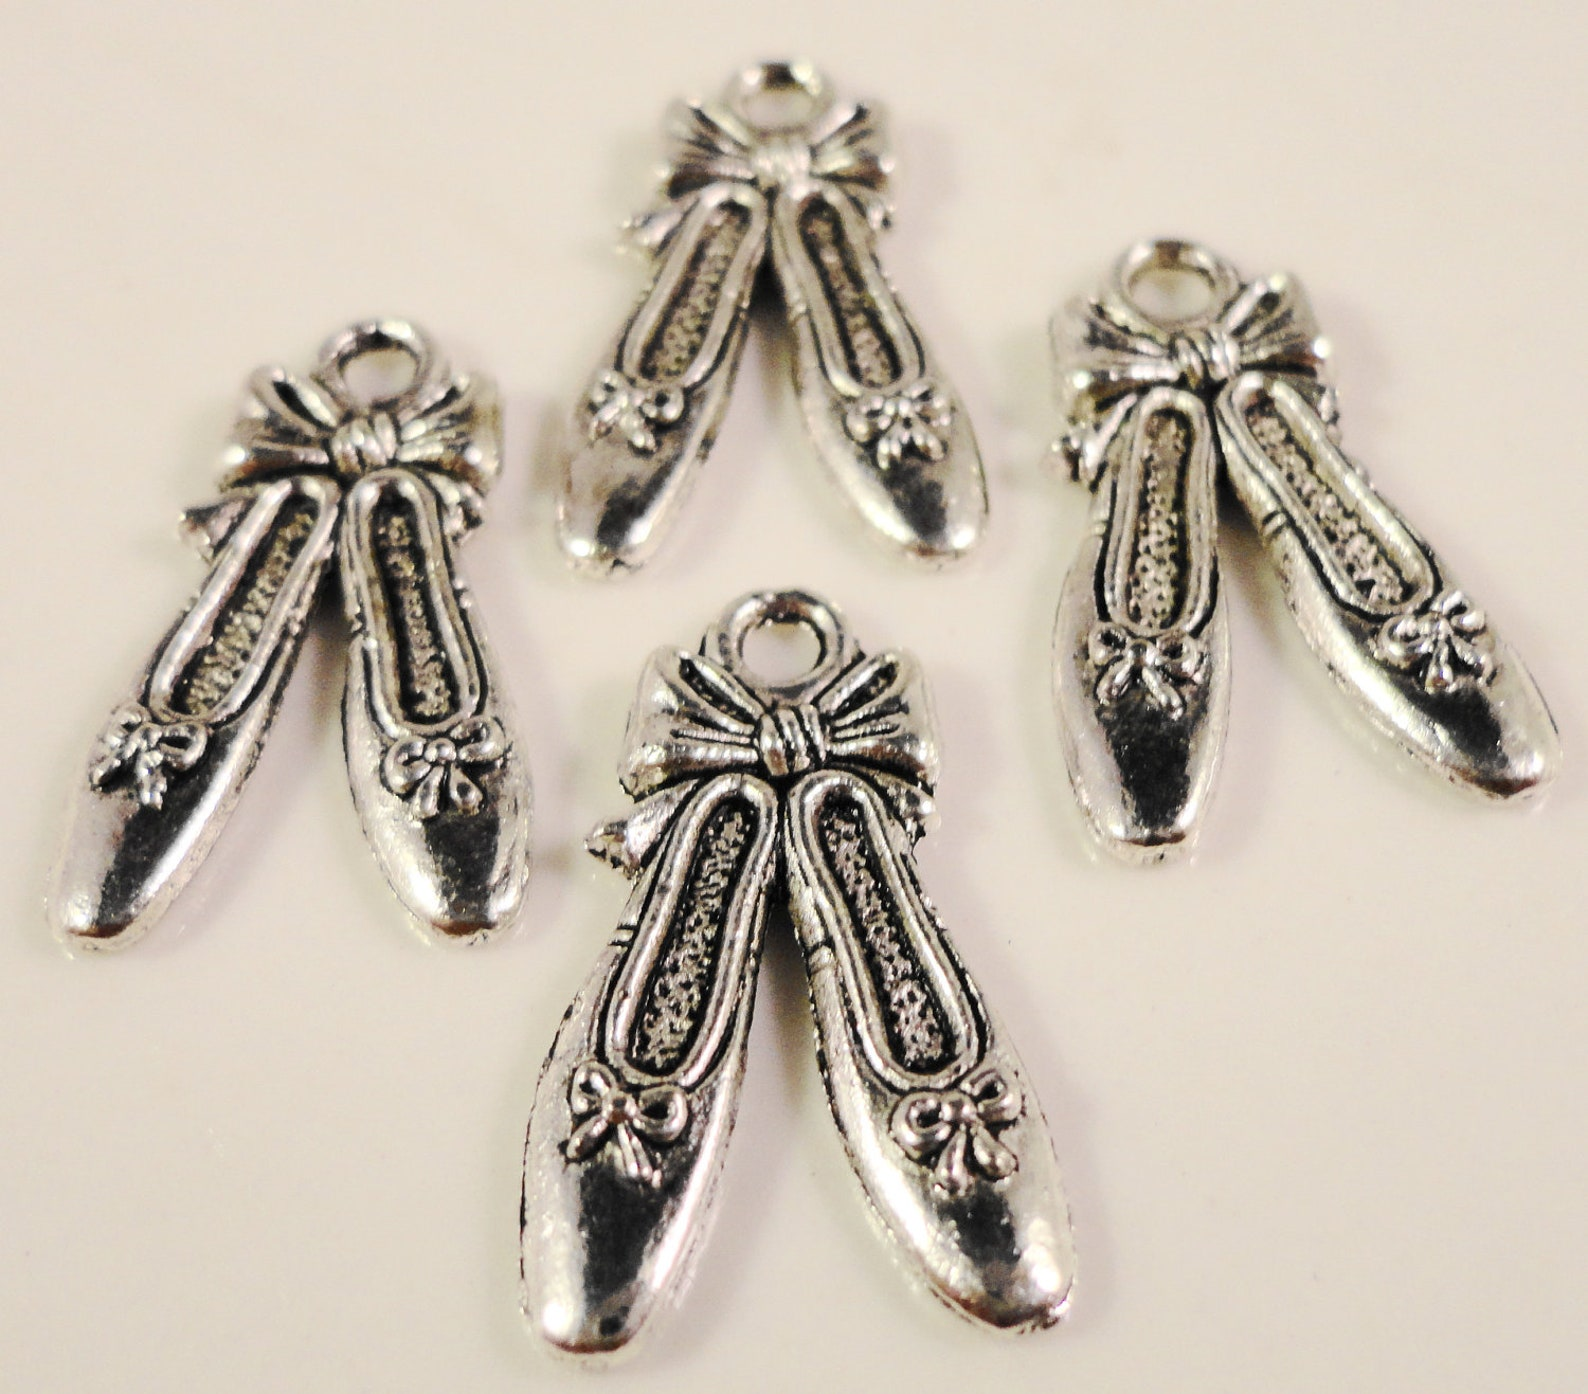 ballet slipper charms 21x12mm antique silver tone metal ballerina slipper shoes charm pendant jewelry findings 10pcs